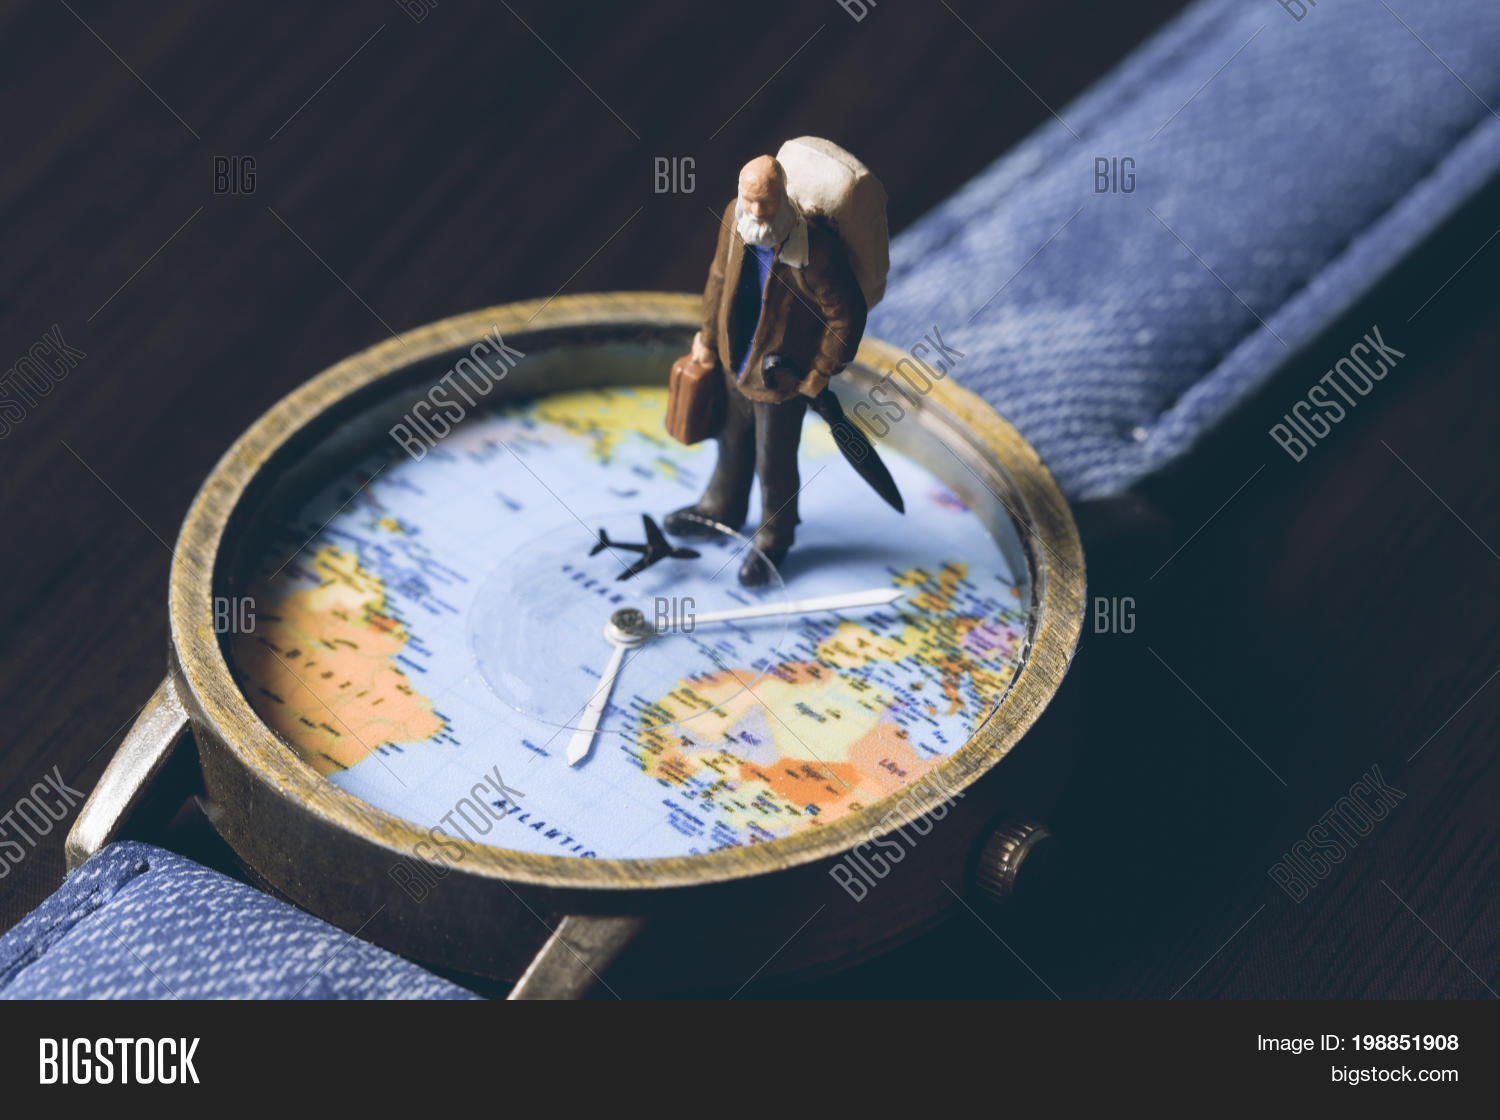 Old man on watches world map image photo bigstock old man on watches with world map vintage toned photo world travel banner senior sciox Image collections